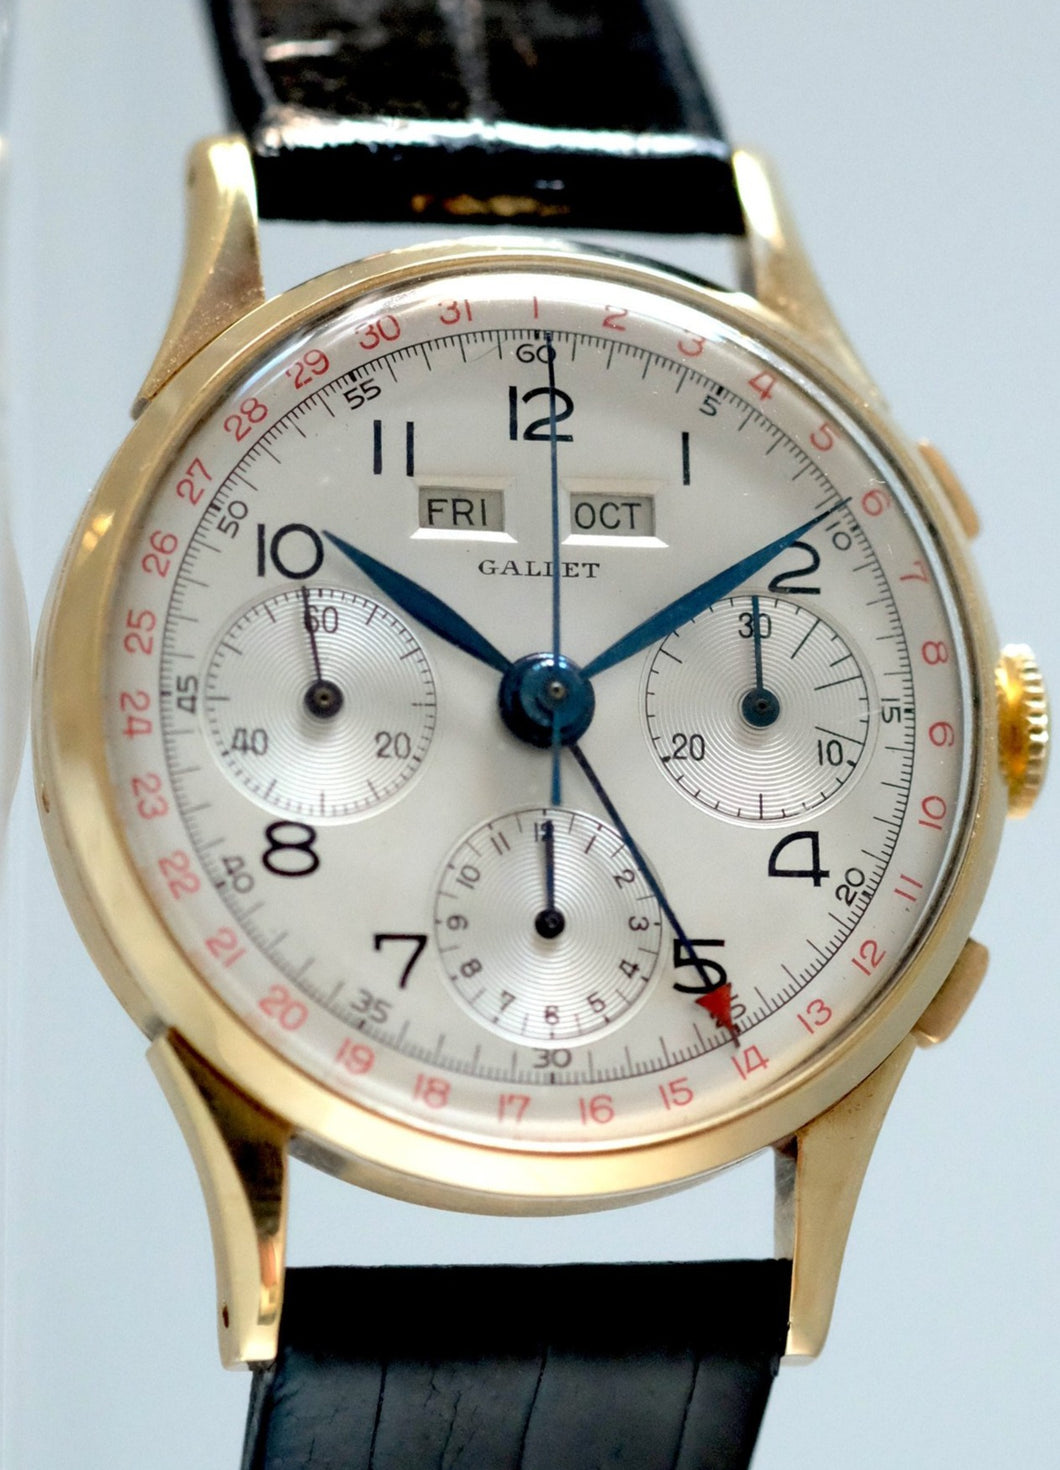 Gallet Triple-Date Chronograph in Yellow Gold